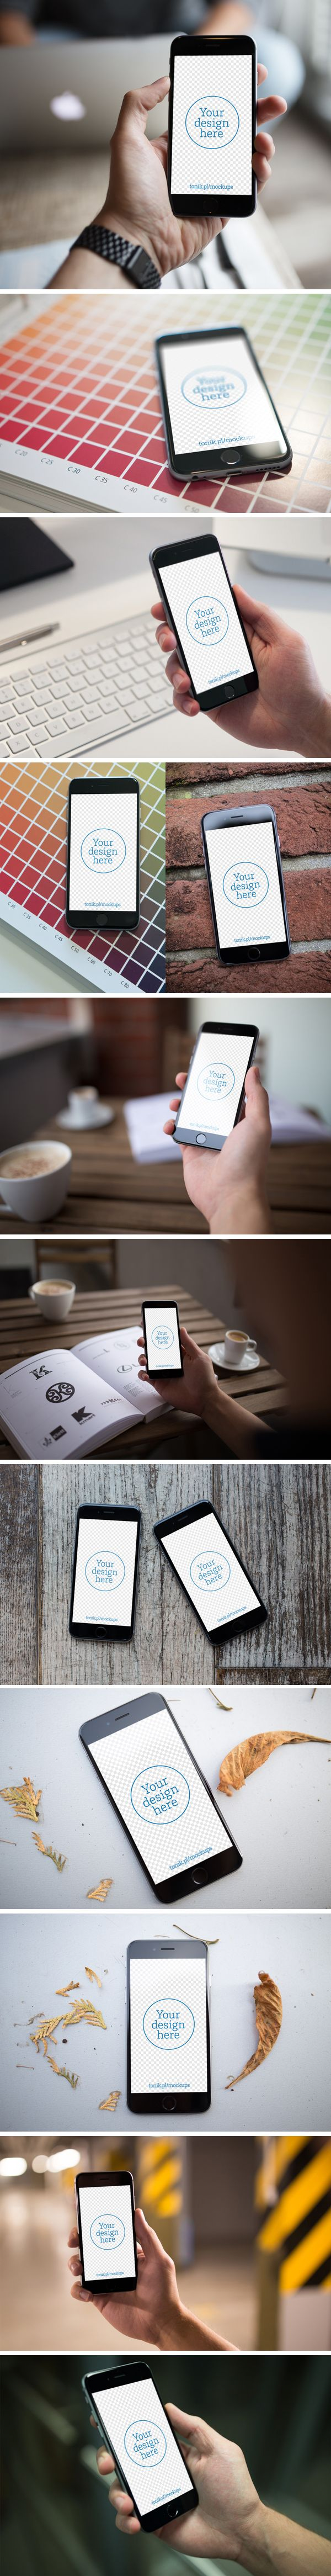 Free I-phone 6 mock ups. http://graphicburger.com/12-iphone-6-photo-mockups/